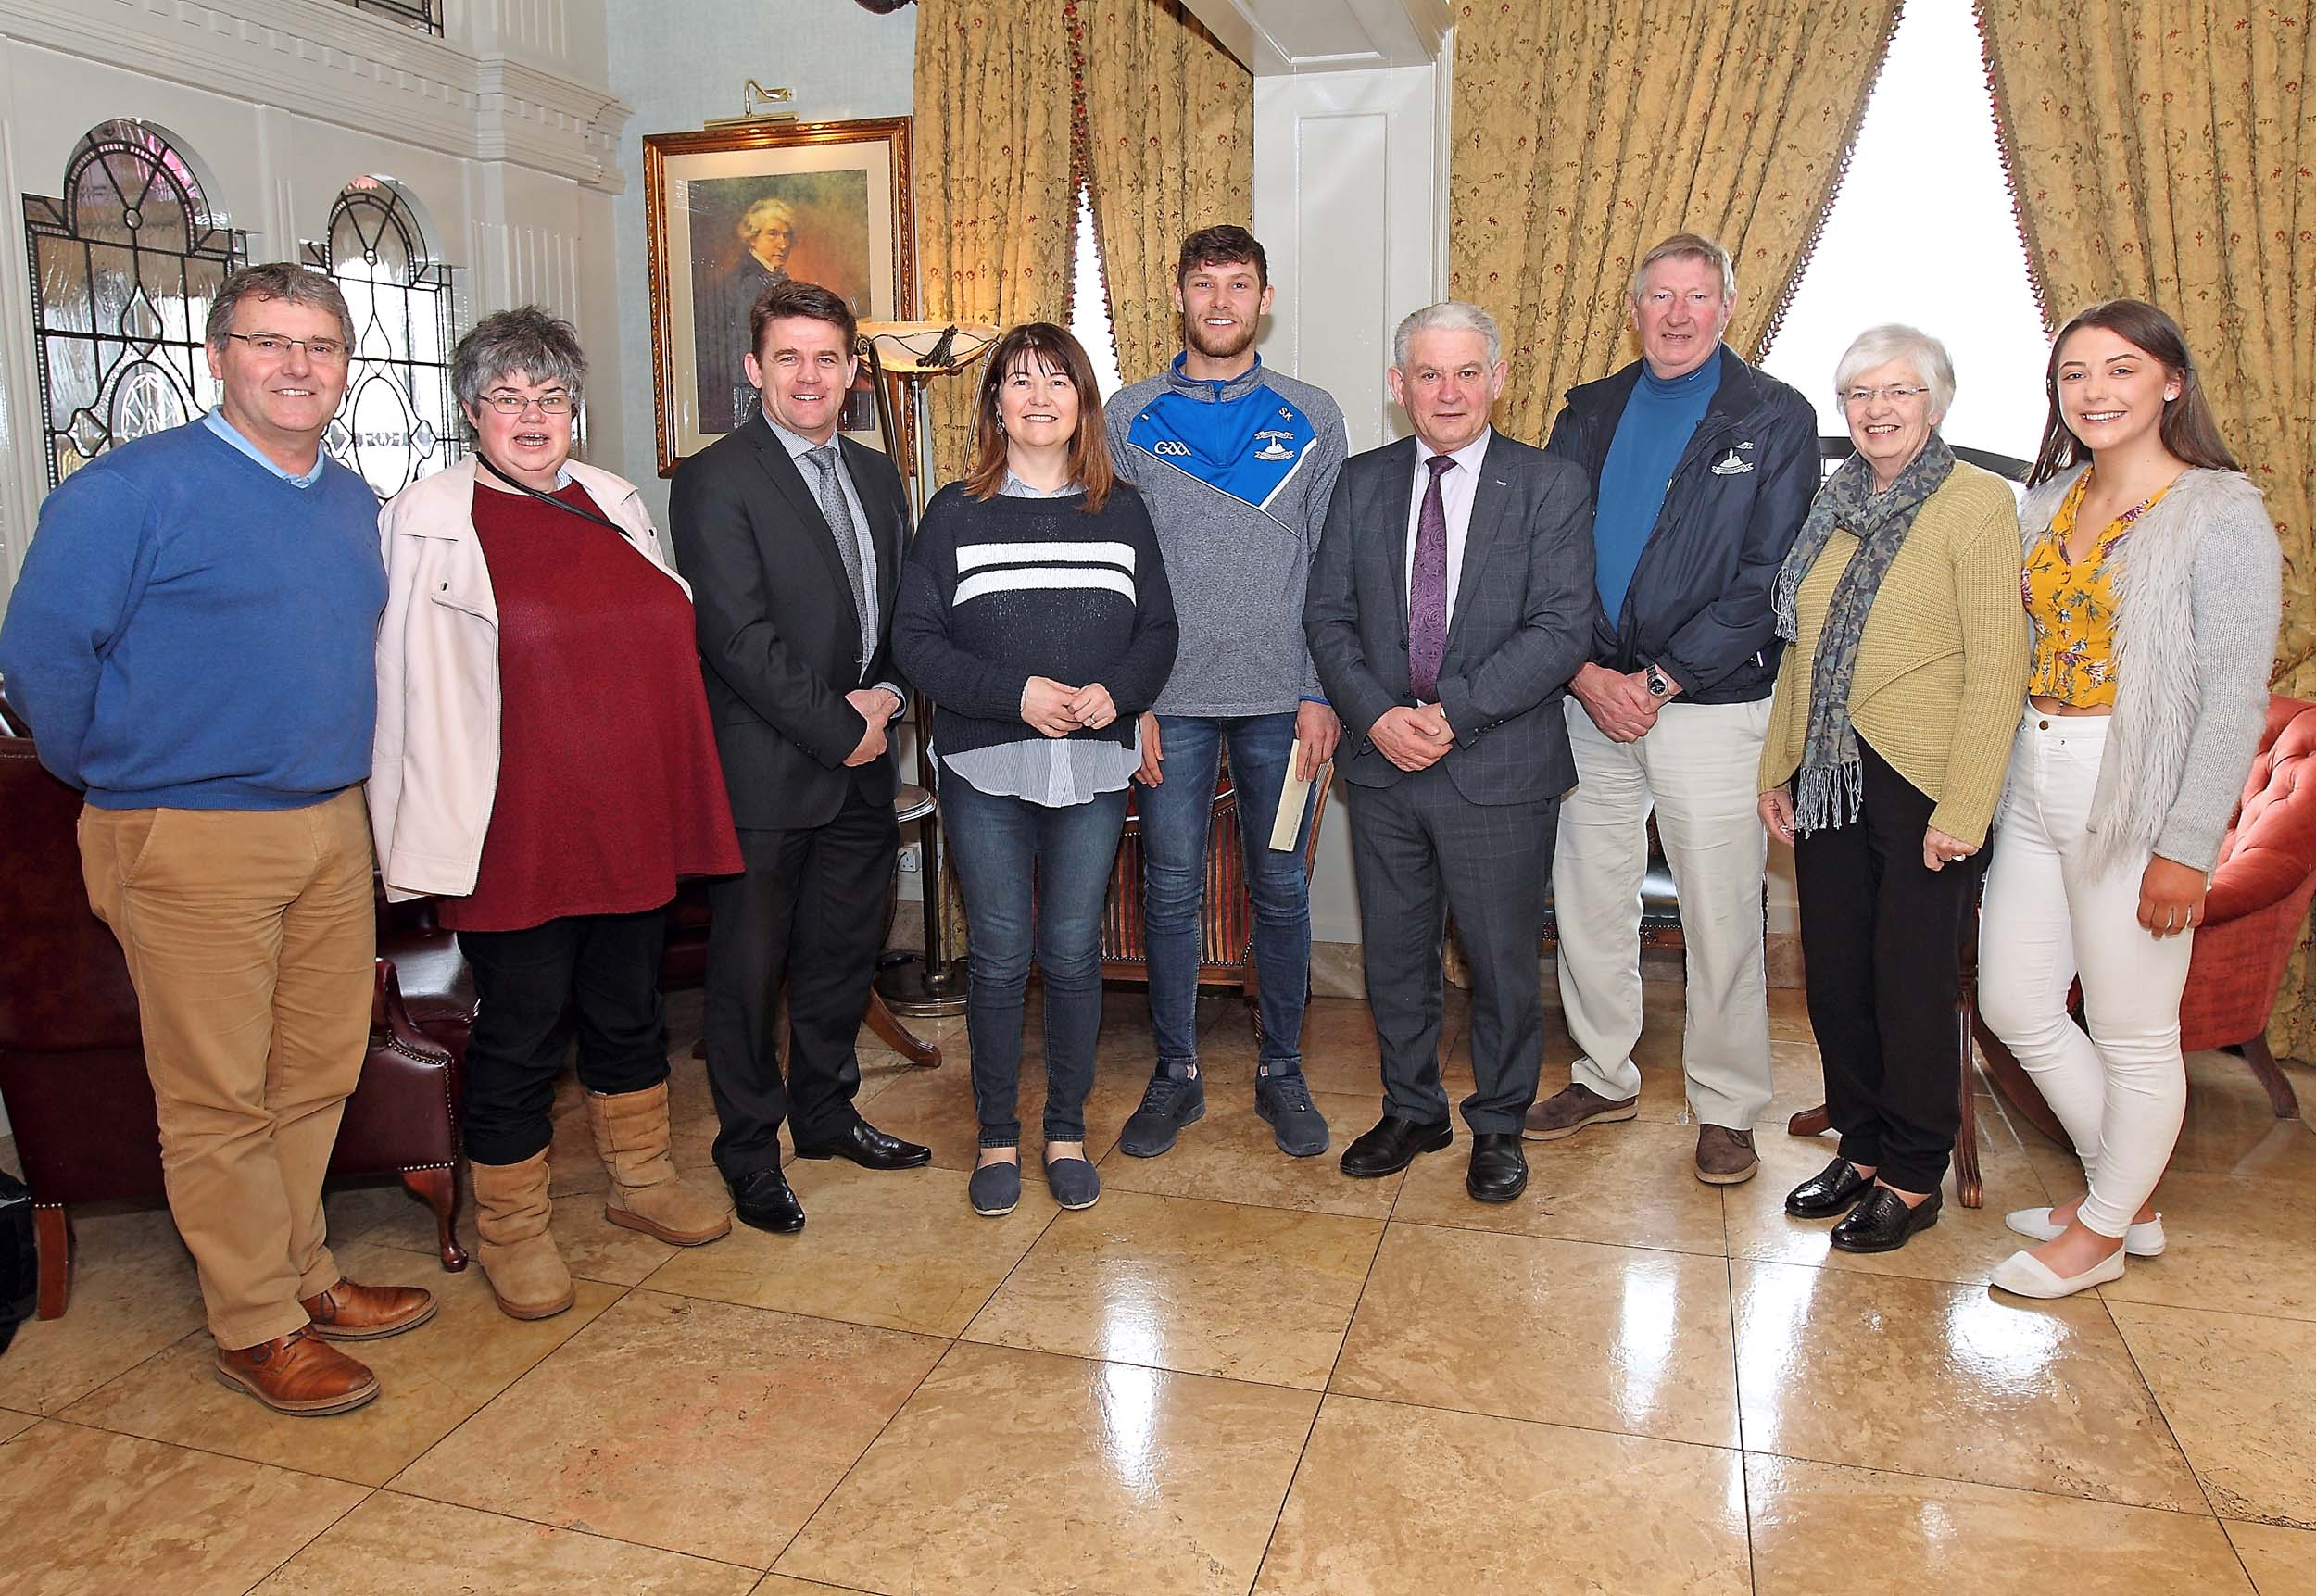 Seamus Keating is the first monthly winner of the WLR Granville Hotel GAA Award